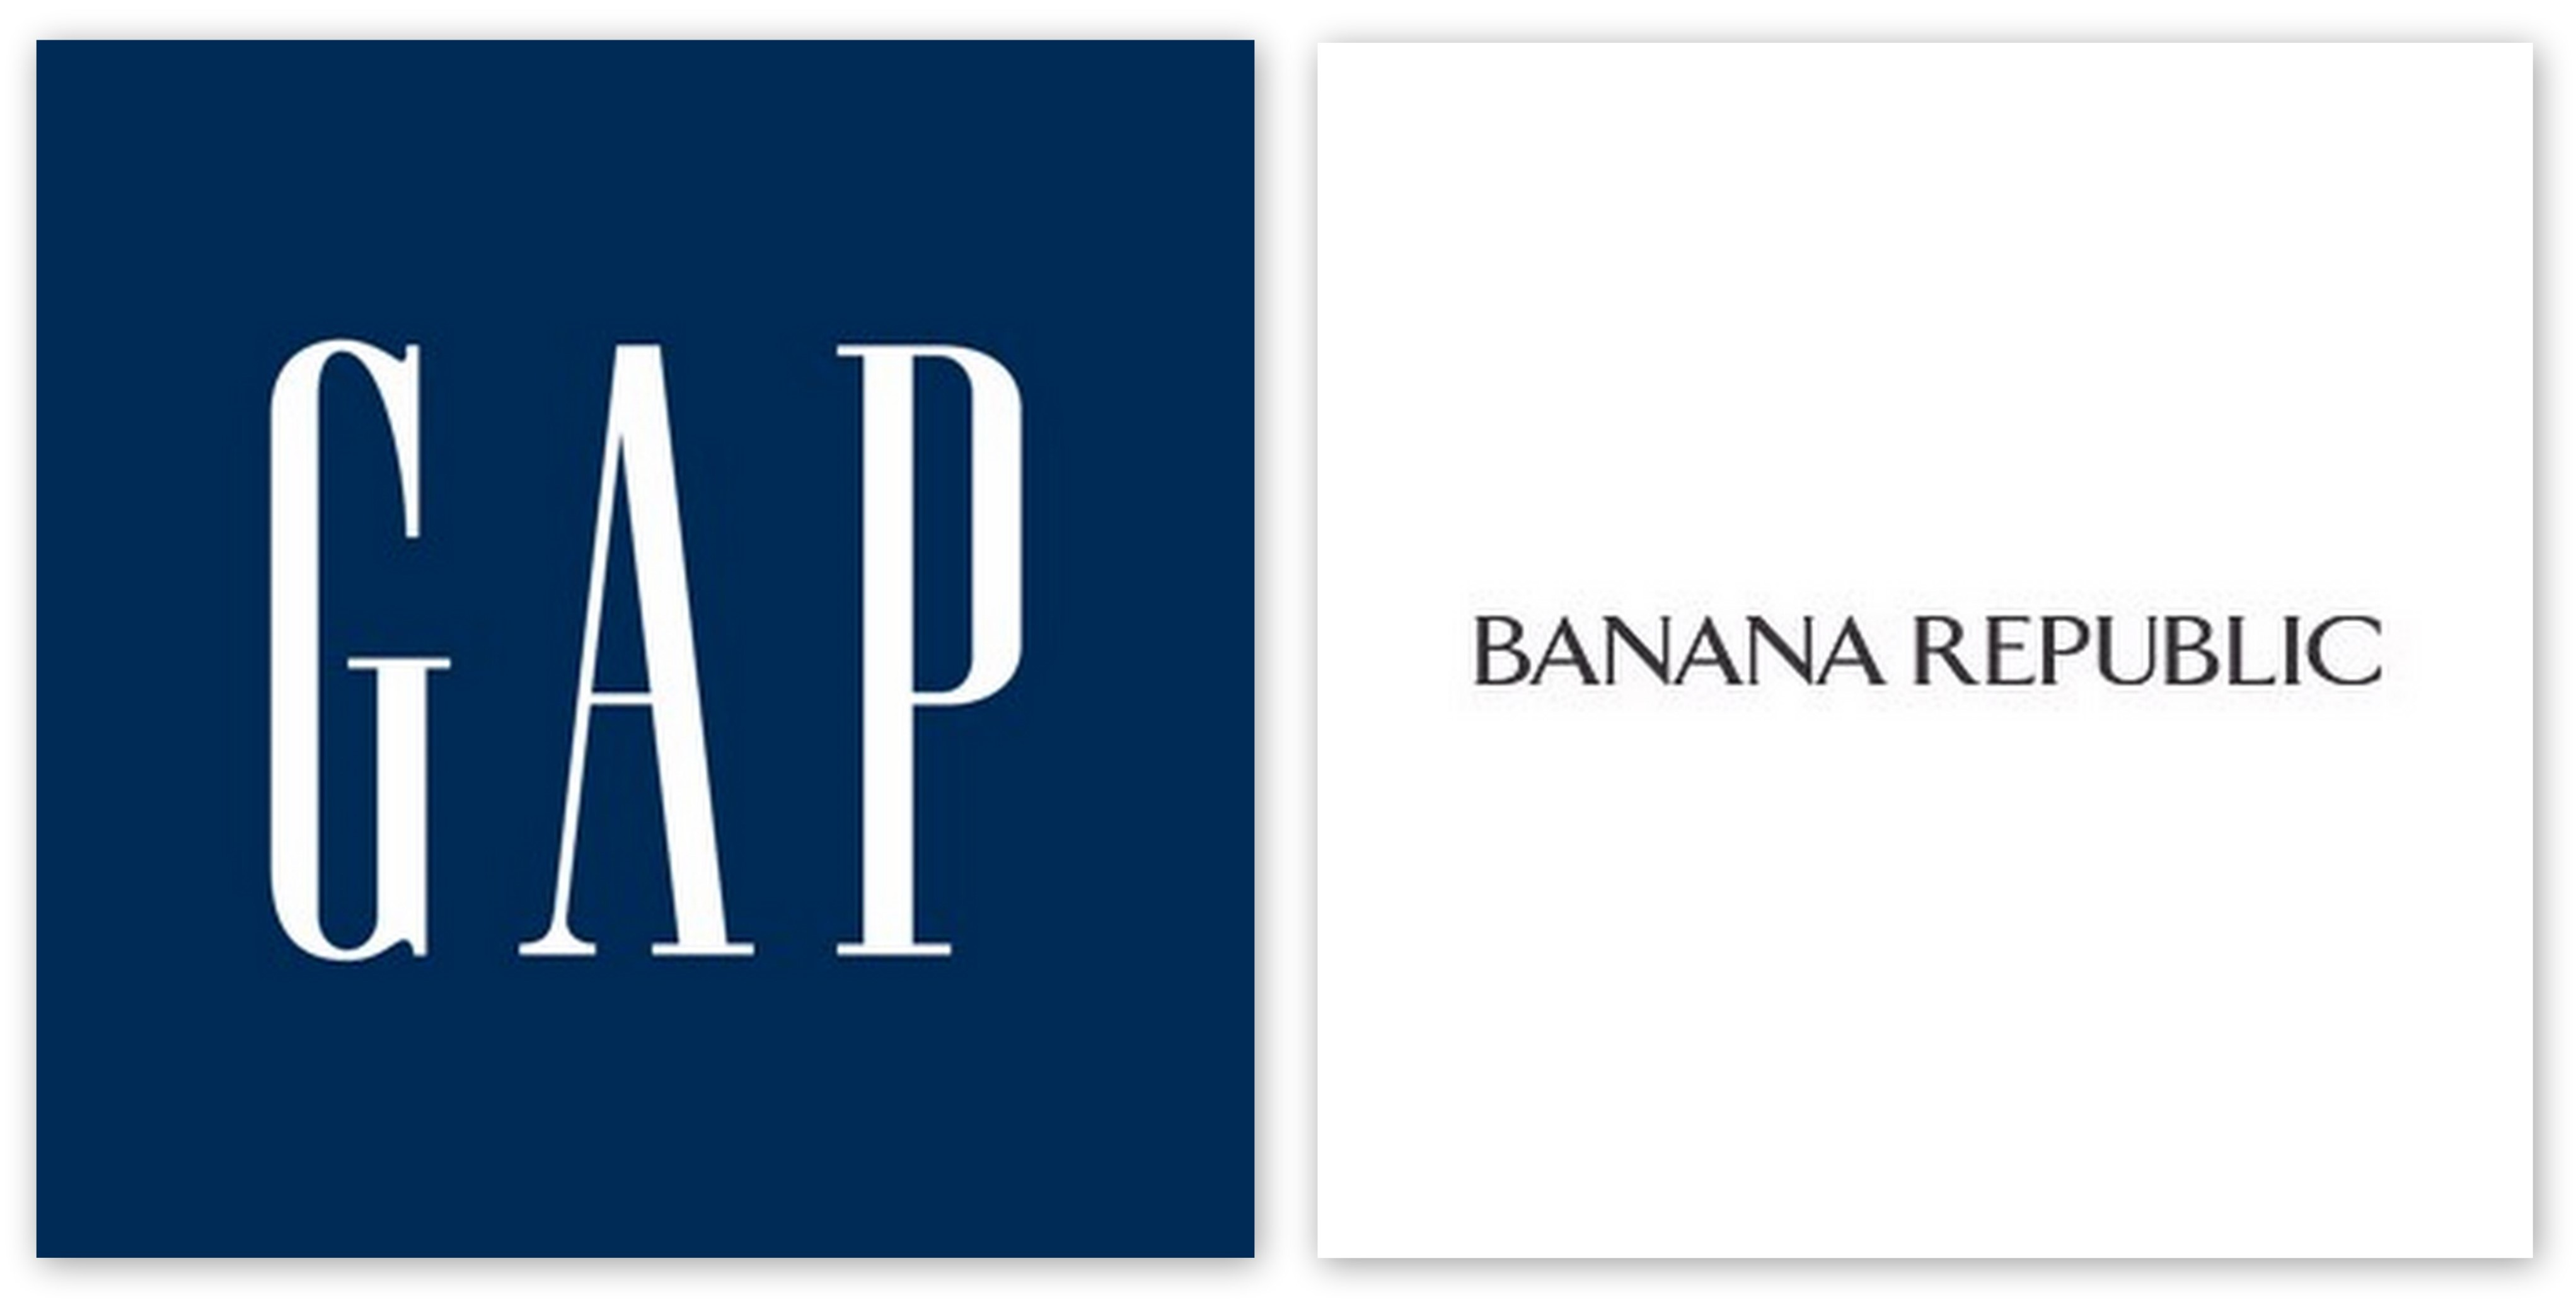 Shop womens, mens, maternity, kids & baby clothes at Gap online and find the perfect pair of jeans, t-shirts, dresses and more for the whole family.